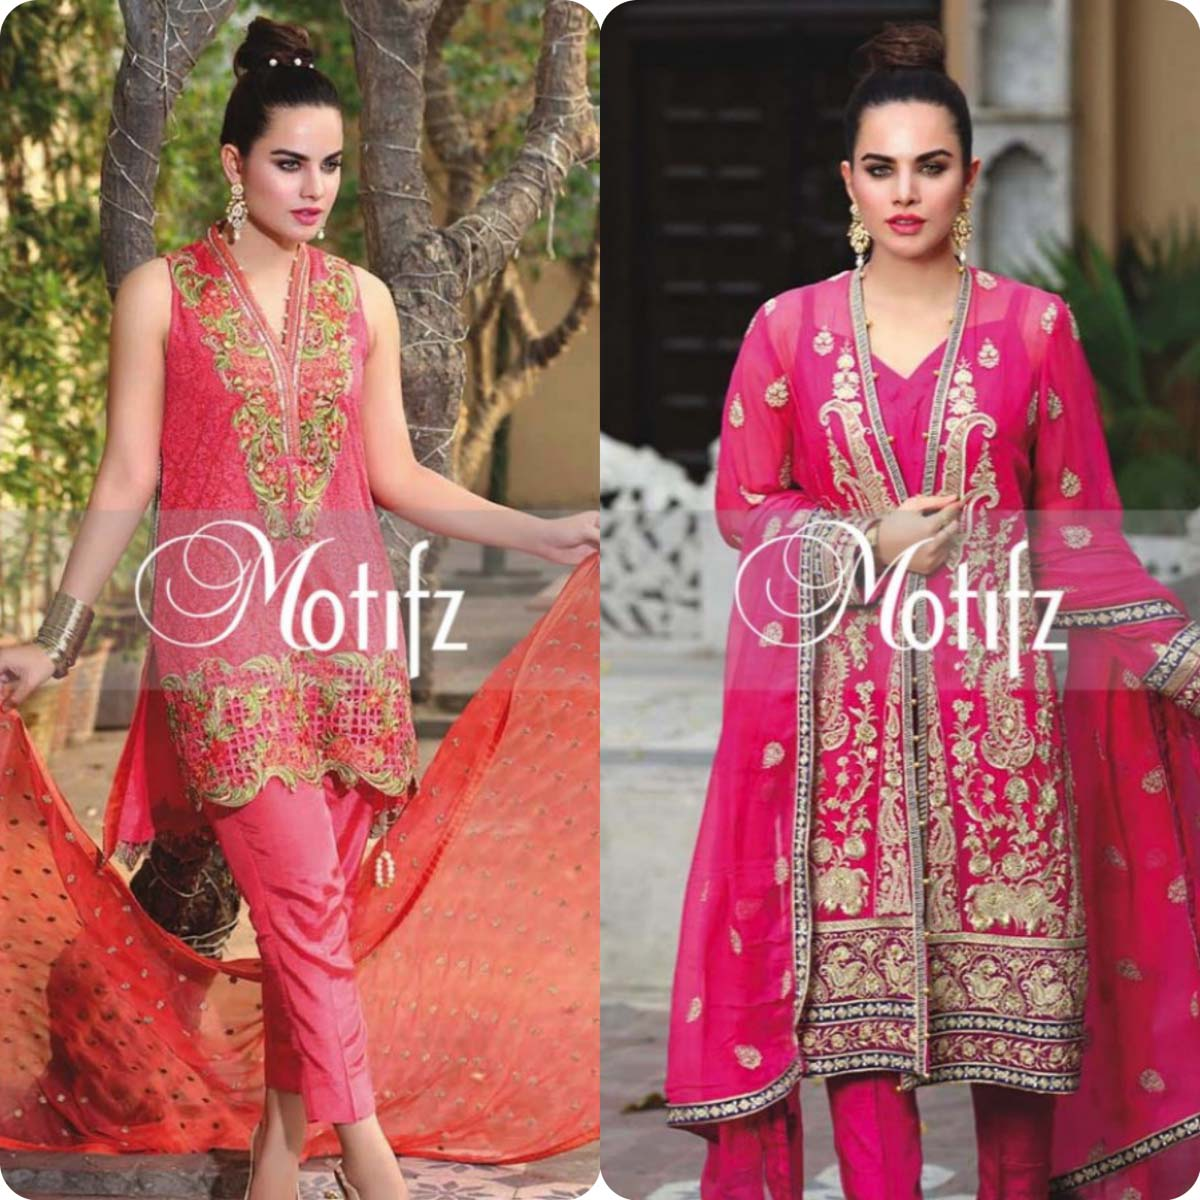 Motifz Party Wear Dresses